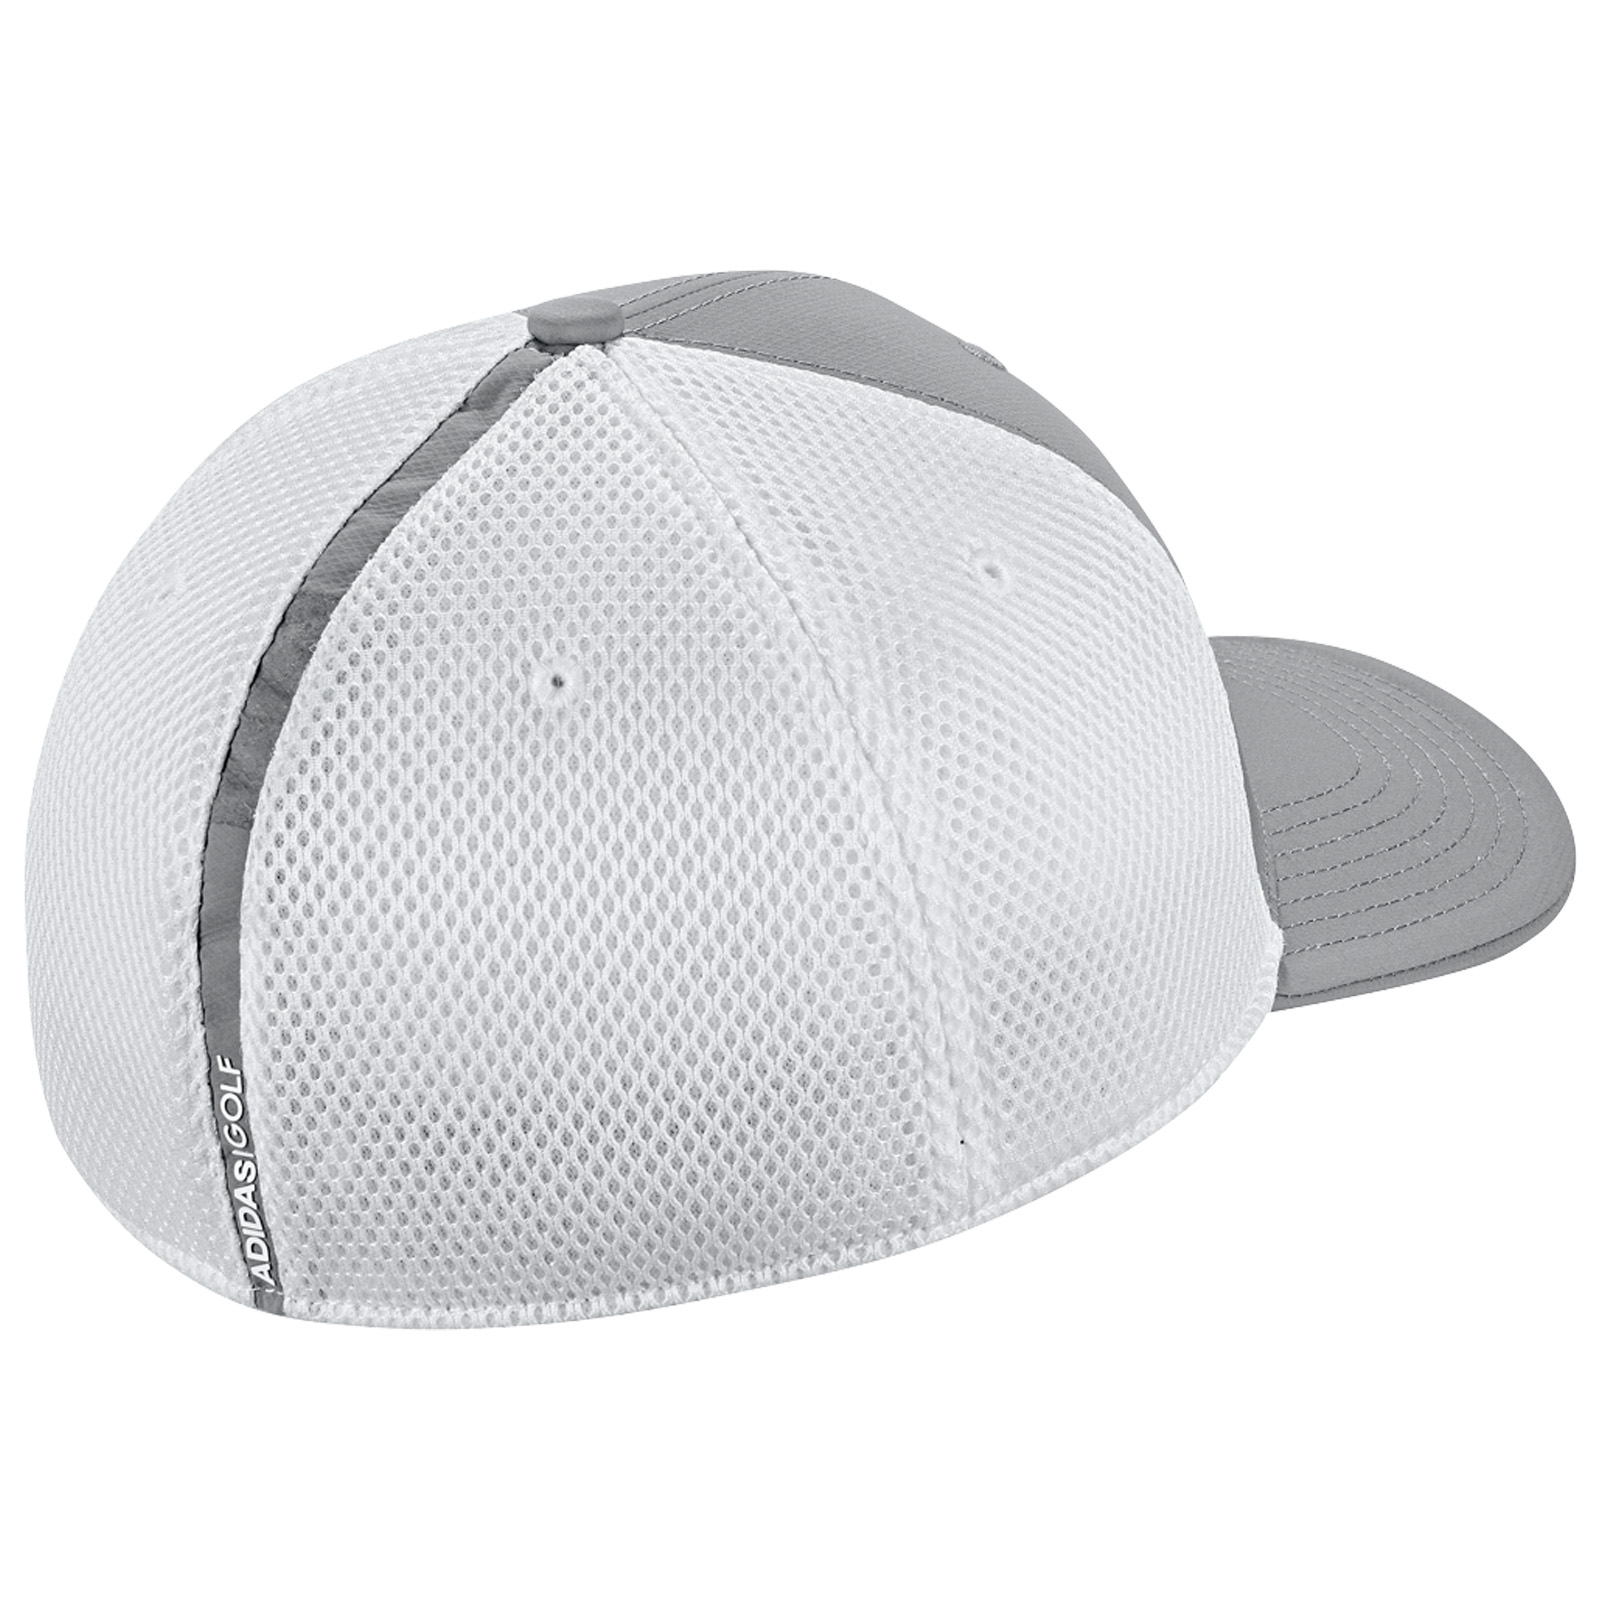 Adidas-Mens-A-Stretch-Tour-Fitted-Golf-Cap-Breathable-Mesh-Baseball-Hat Indexbild 11